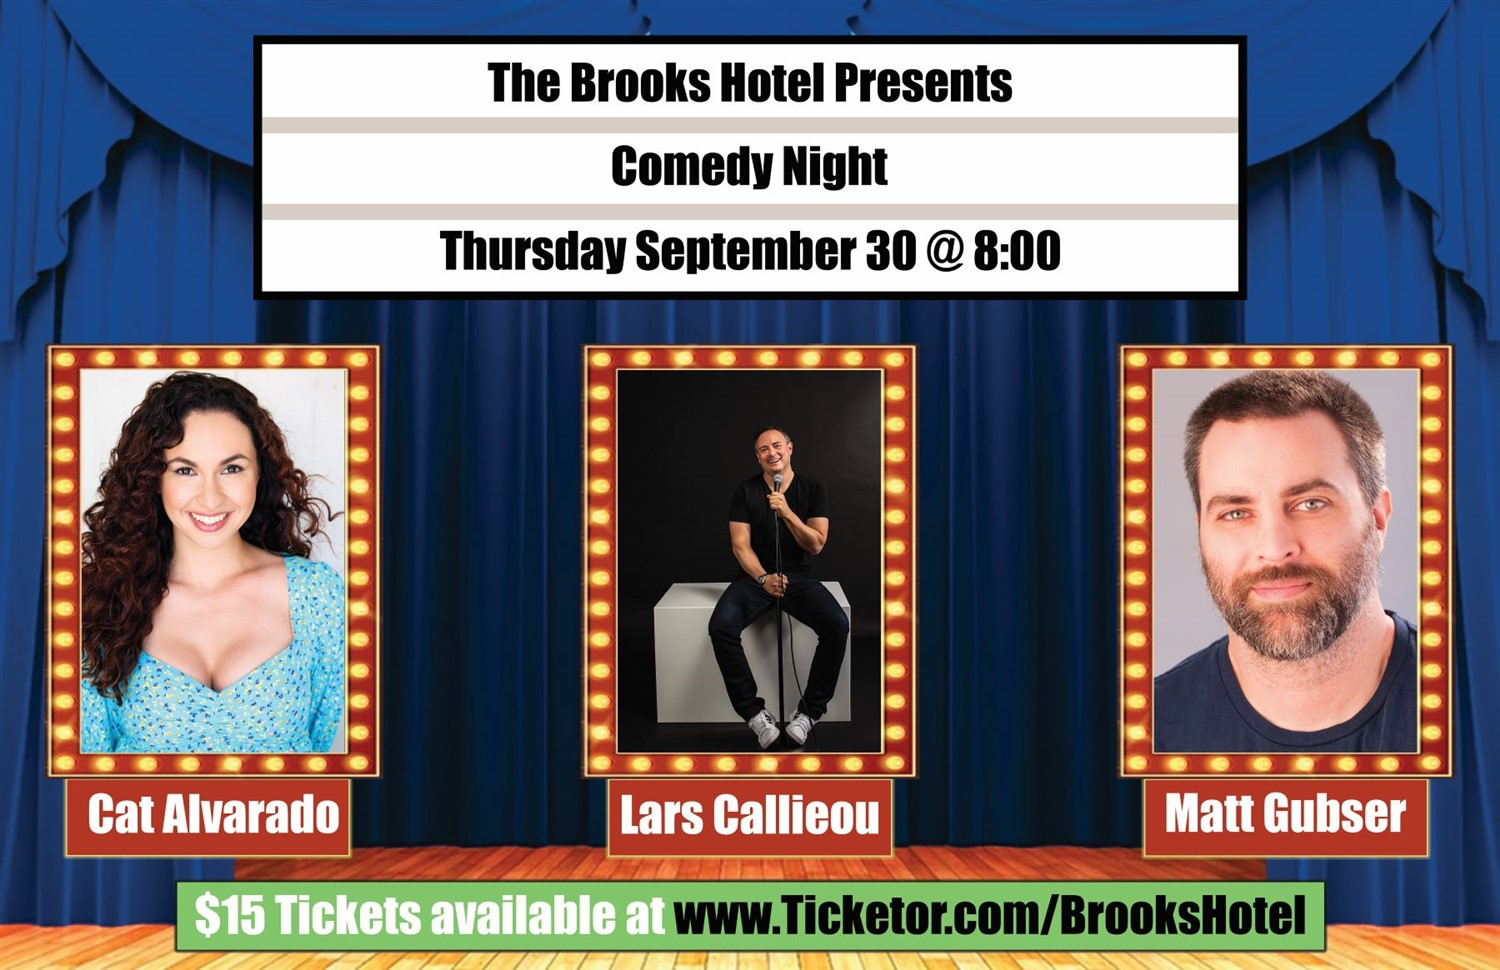 Comedy Night at the Brooks Hotel  on Sep 30, 20:00@Brooks Hotel - Buy tickets and Get information on Brooks Hotel